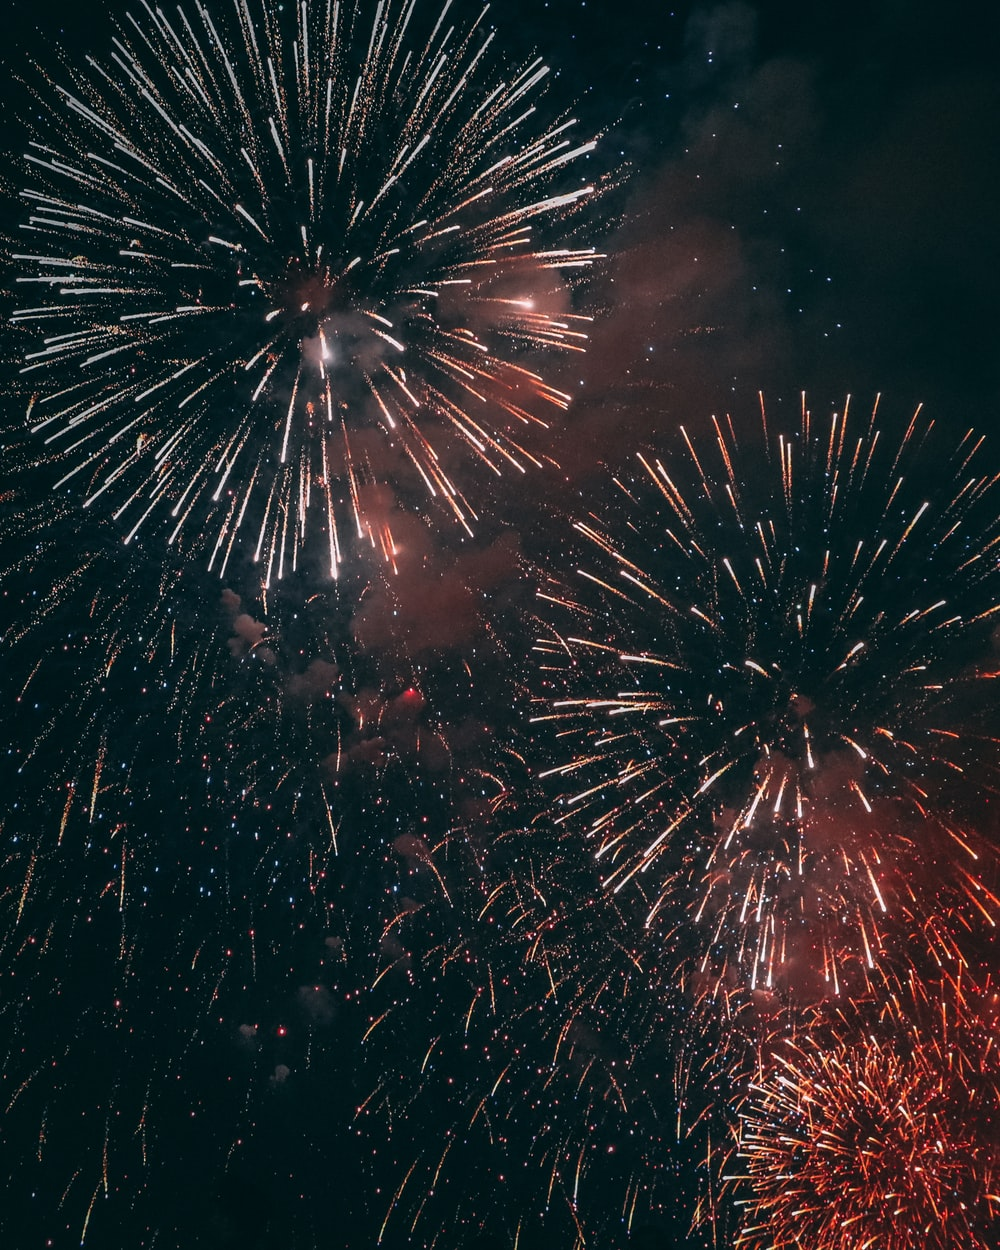 900+ Fireworks Image: Download HD Pictures & Photos on Unsplash